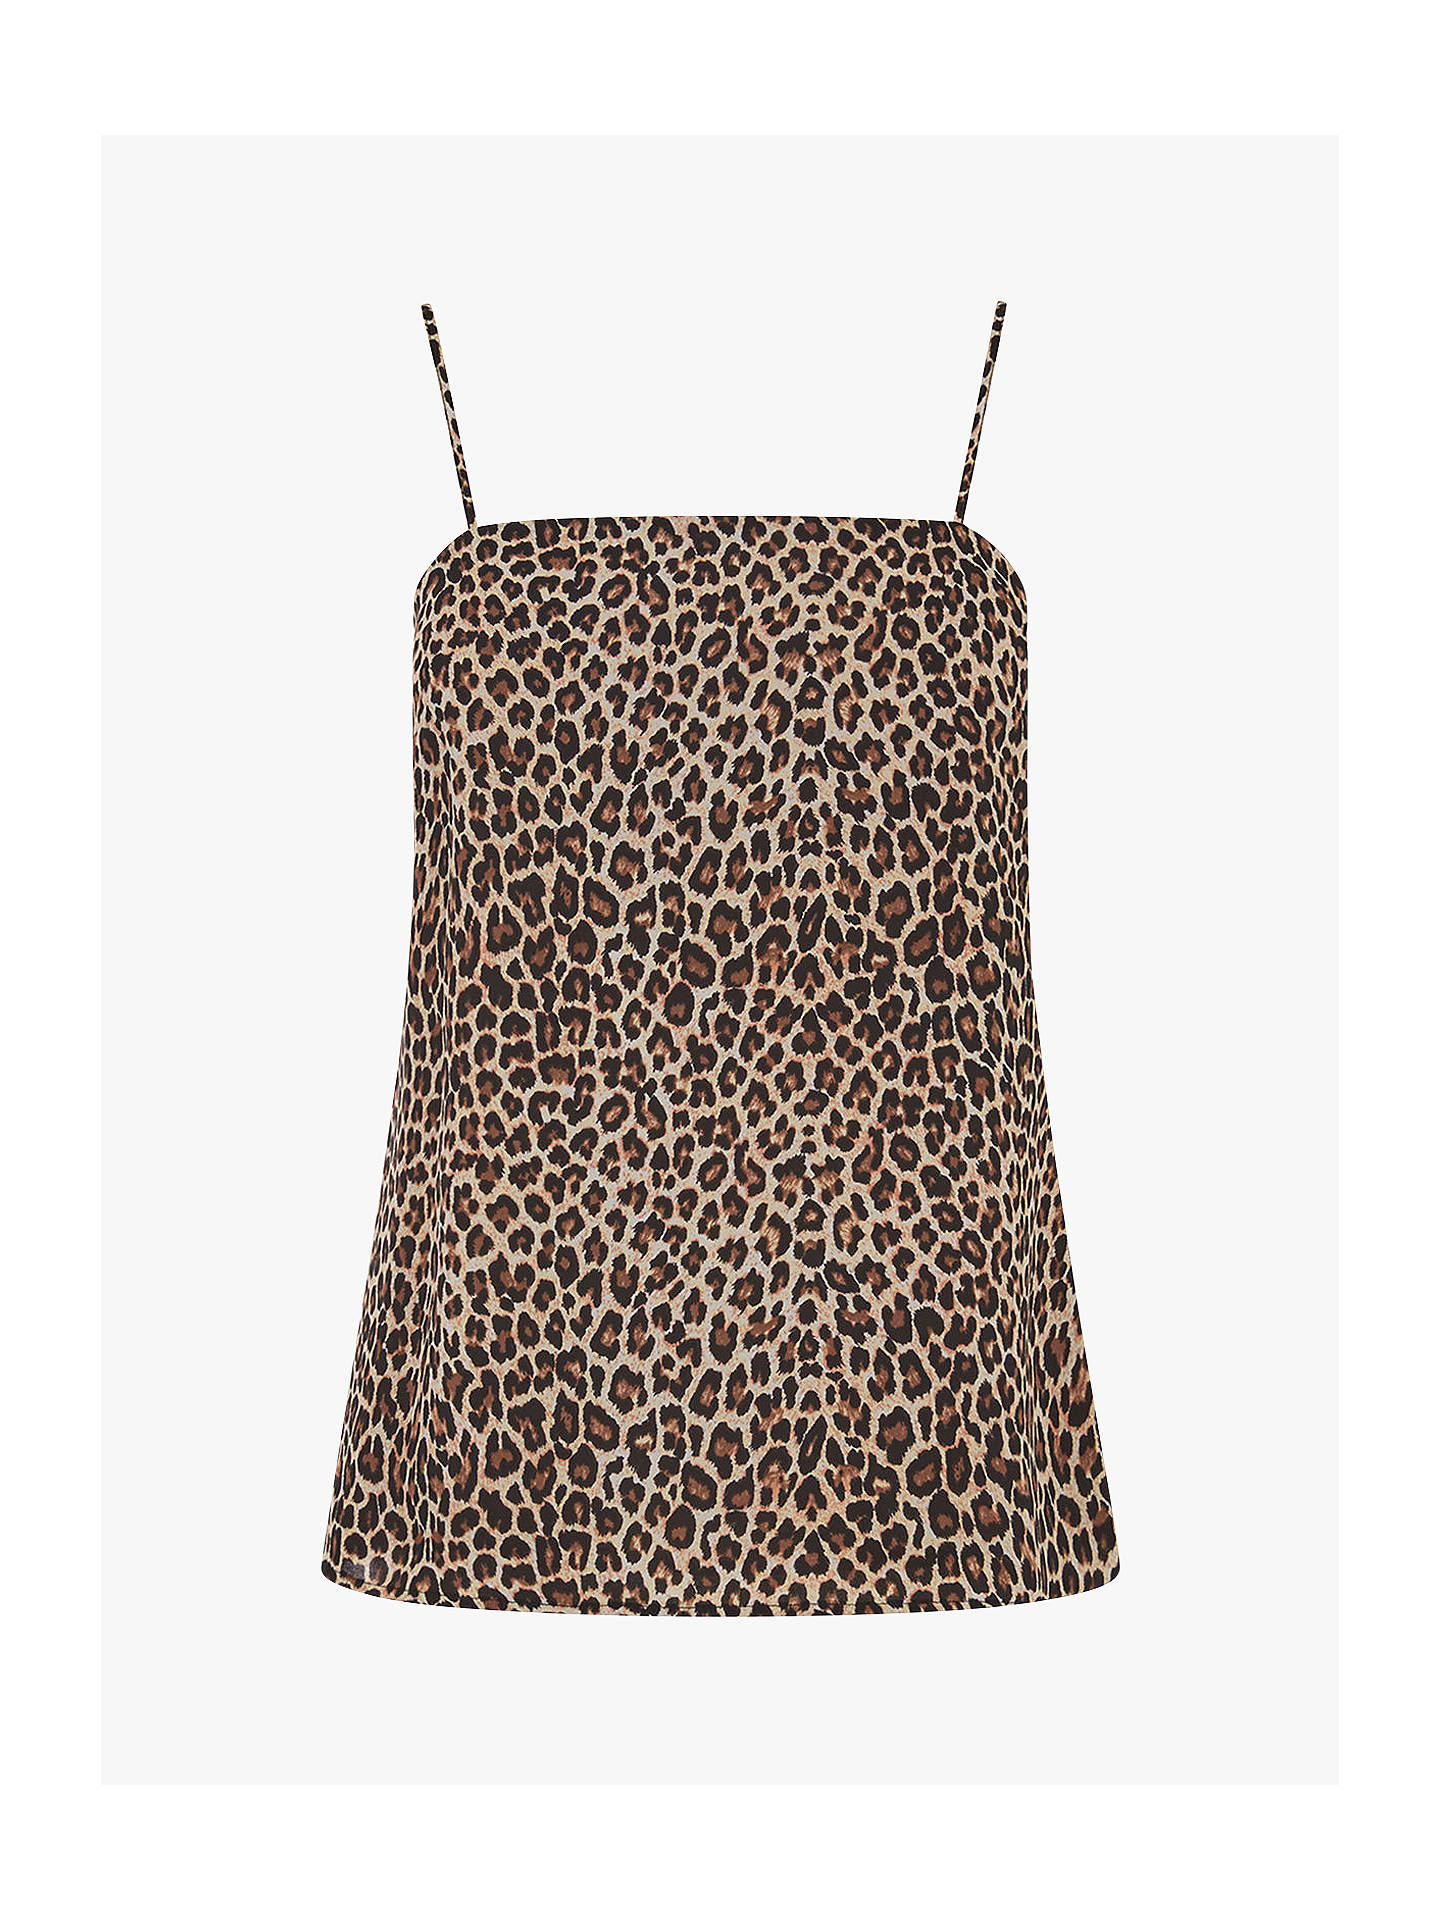 BuyOasis Square Neck Leopard Print Camisole Top, Multi, 12 Online at johnlewis.com